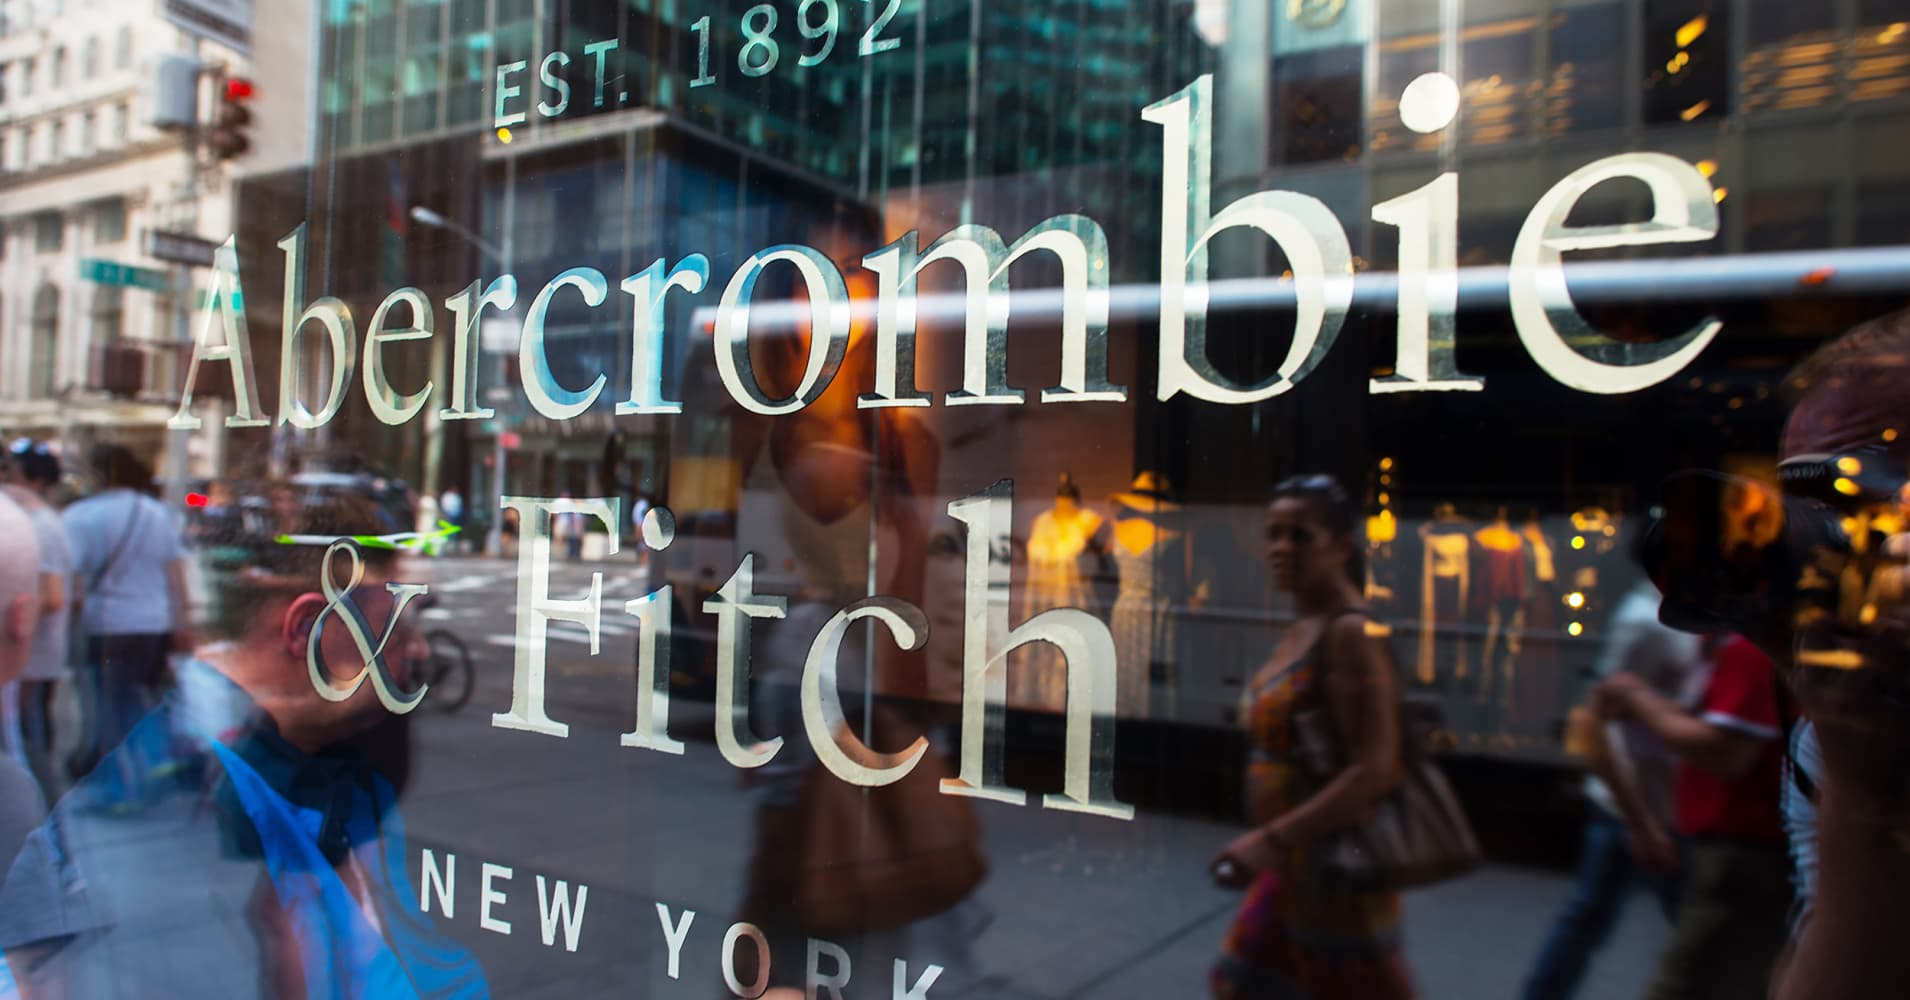 abercrombie and fitch porter analysis Pest analysis on abercrombie & fitch abercrombie & fitch (a&f) (nyse: anf) is an american retailer, currently headed by chairman and ceo.